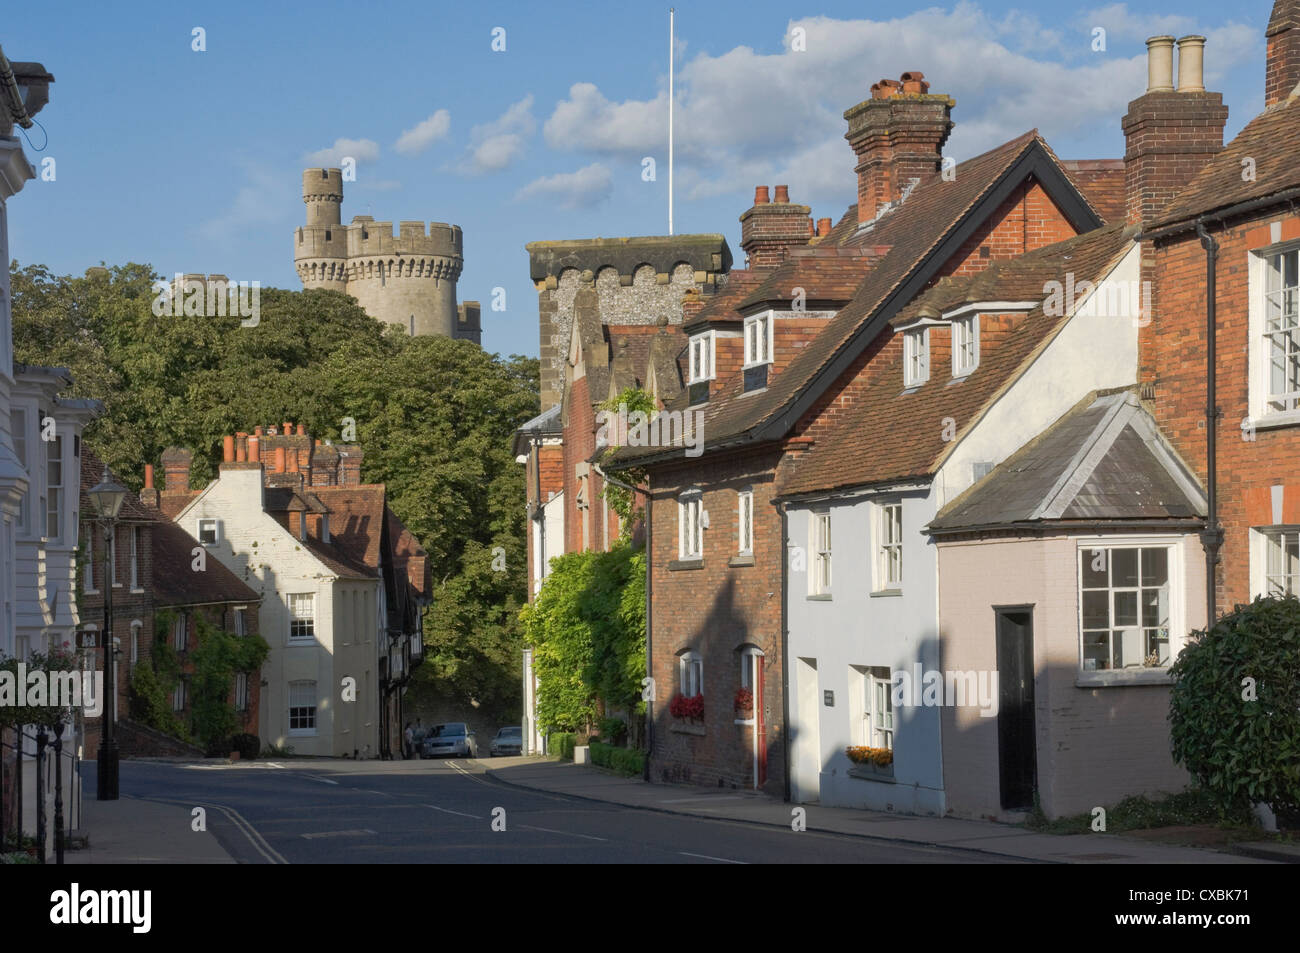 Mixed red brick dwellings approaching Arundel Castle, Arundel, West Sussex, England, United Kingdom, Europe - Stock Image